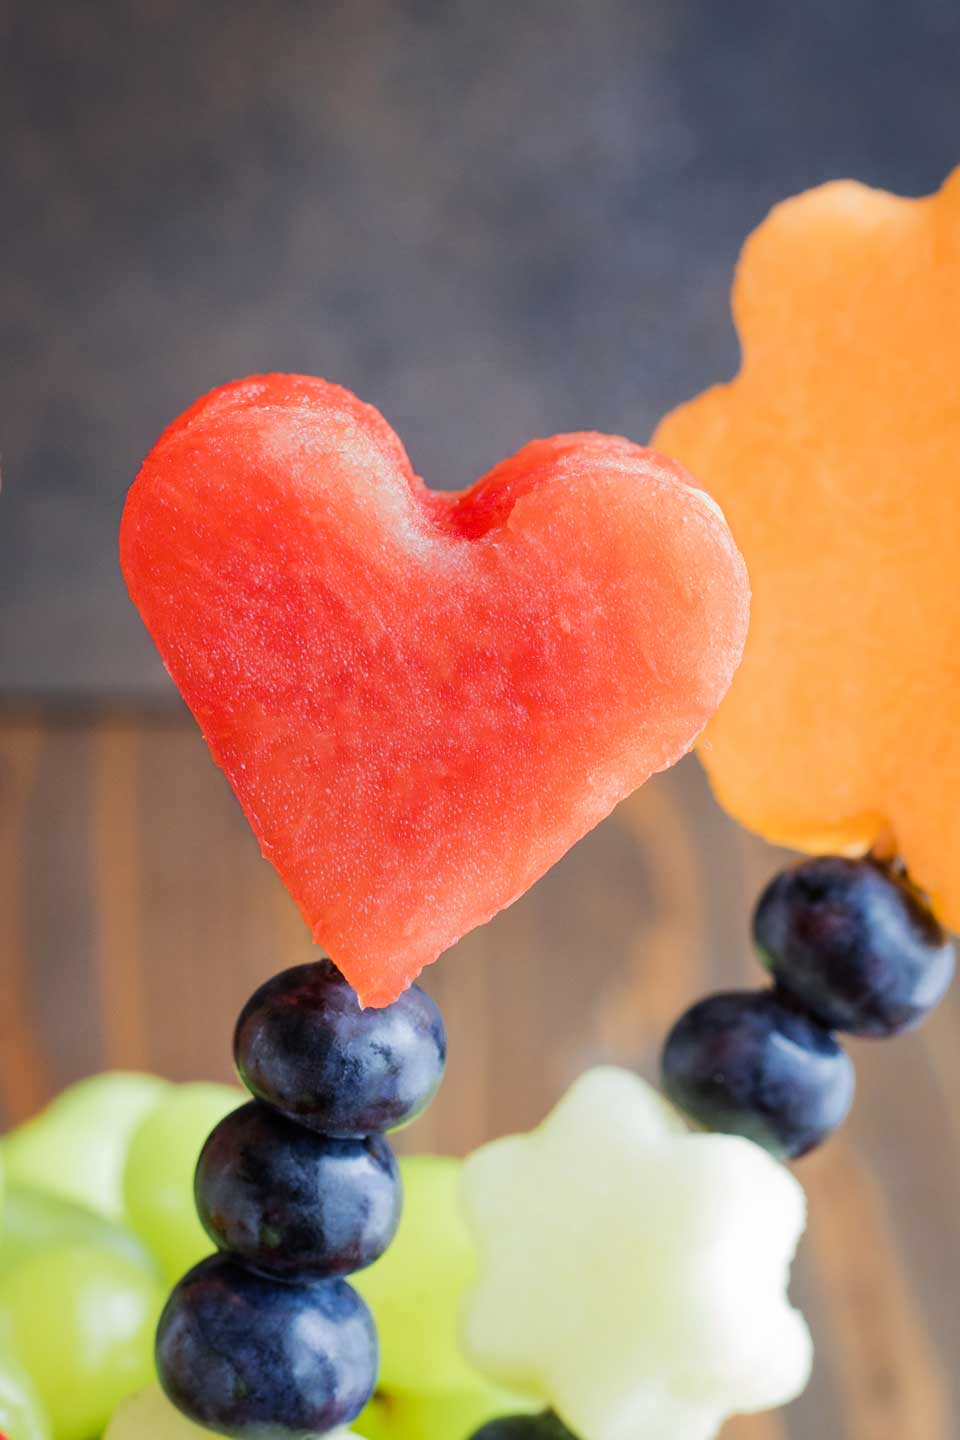 closeup of one kabob out of the bouquet, with a watermelon heart on top and three blueberries underneath